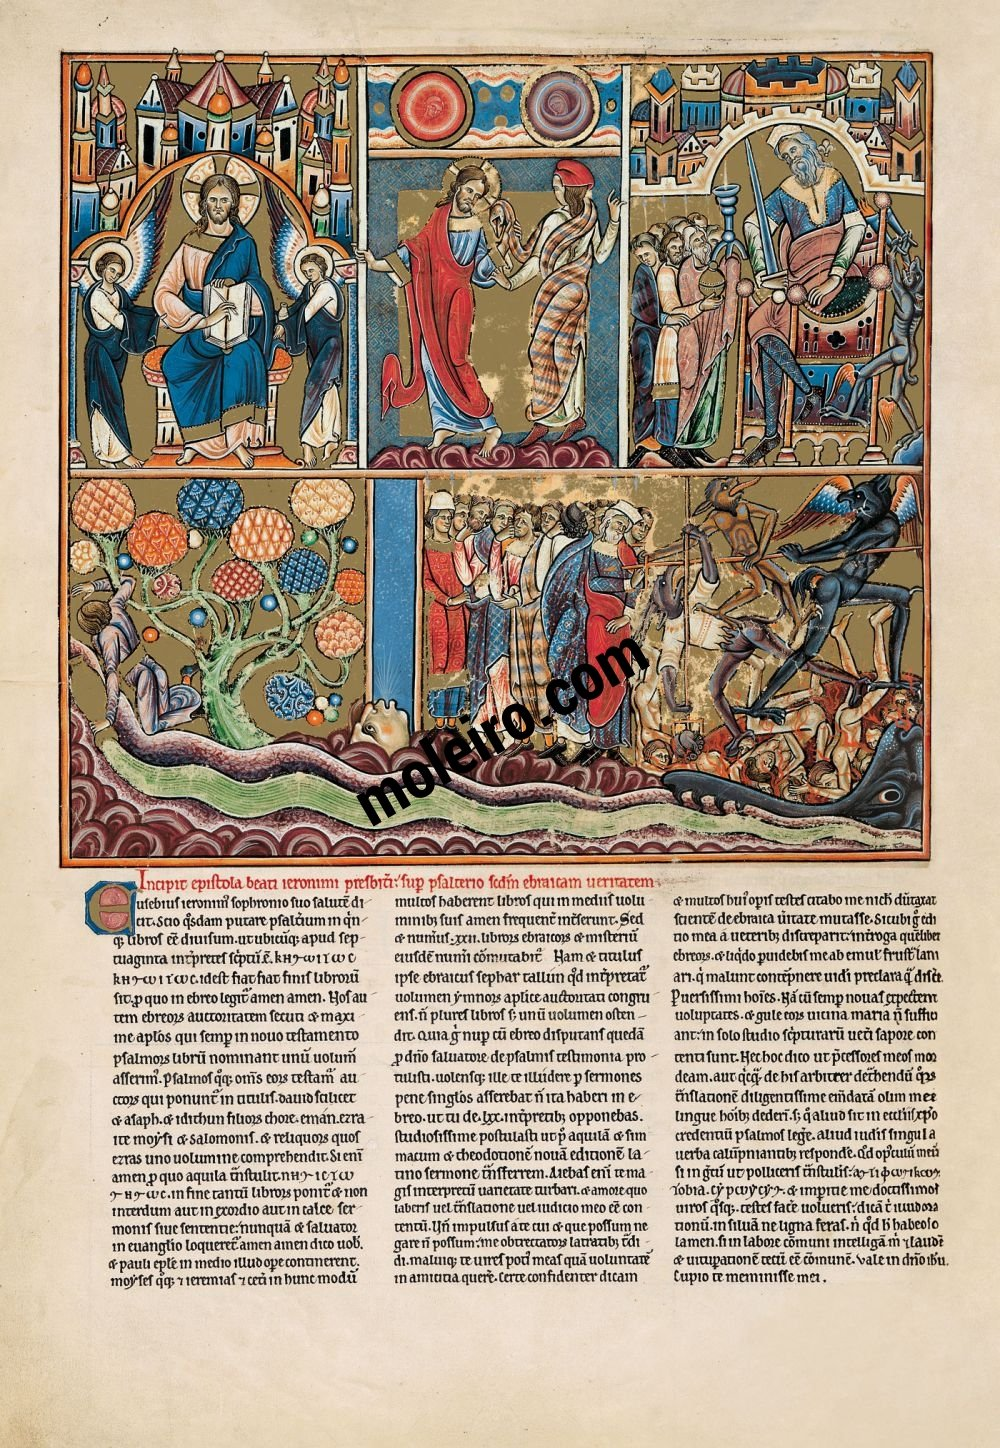 The Great Canterbury Psalter f. 5v, psalm 1 Blessed is the man who has not walked in the counsel of the ungodly